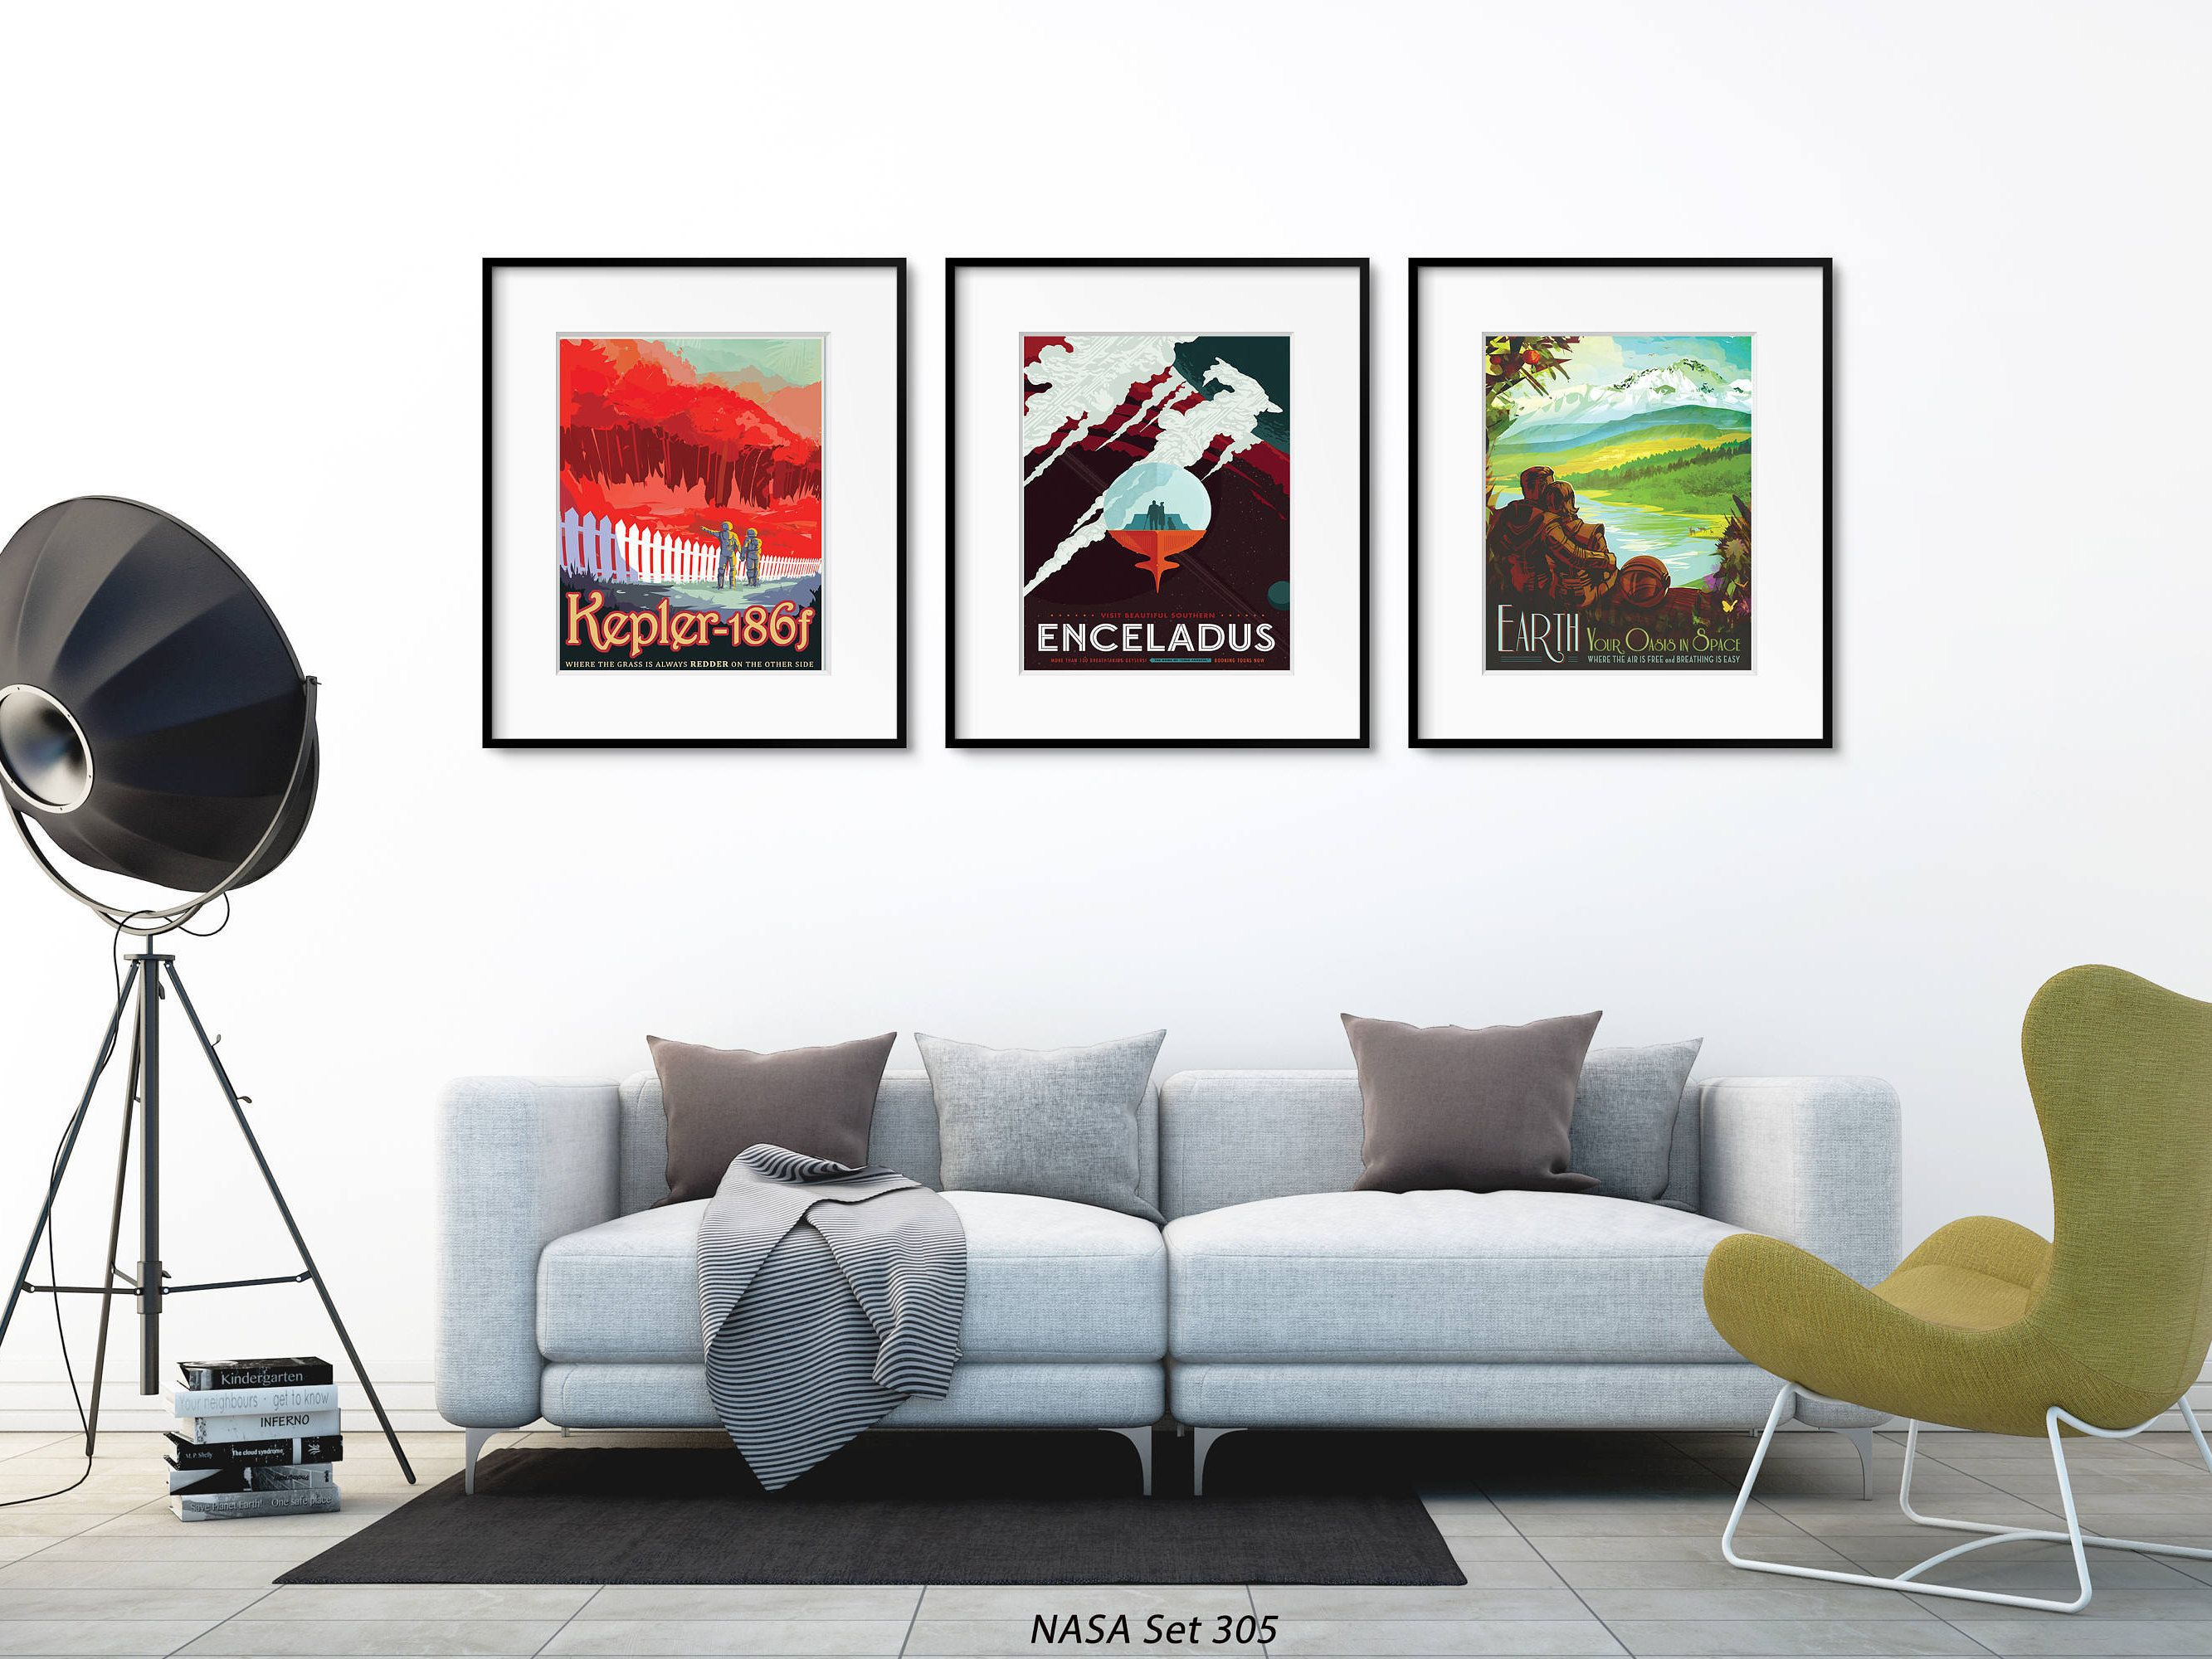 Nasa Poster Wall Art Space Artwork Set Of 3 Space Prints Space Poster Art Outerspace Decor By Picturebypicture O Space Artwork Poster Wall Art Space Poster